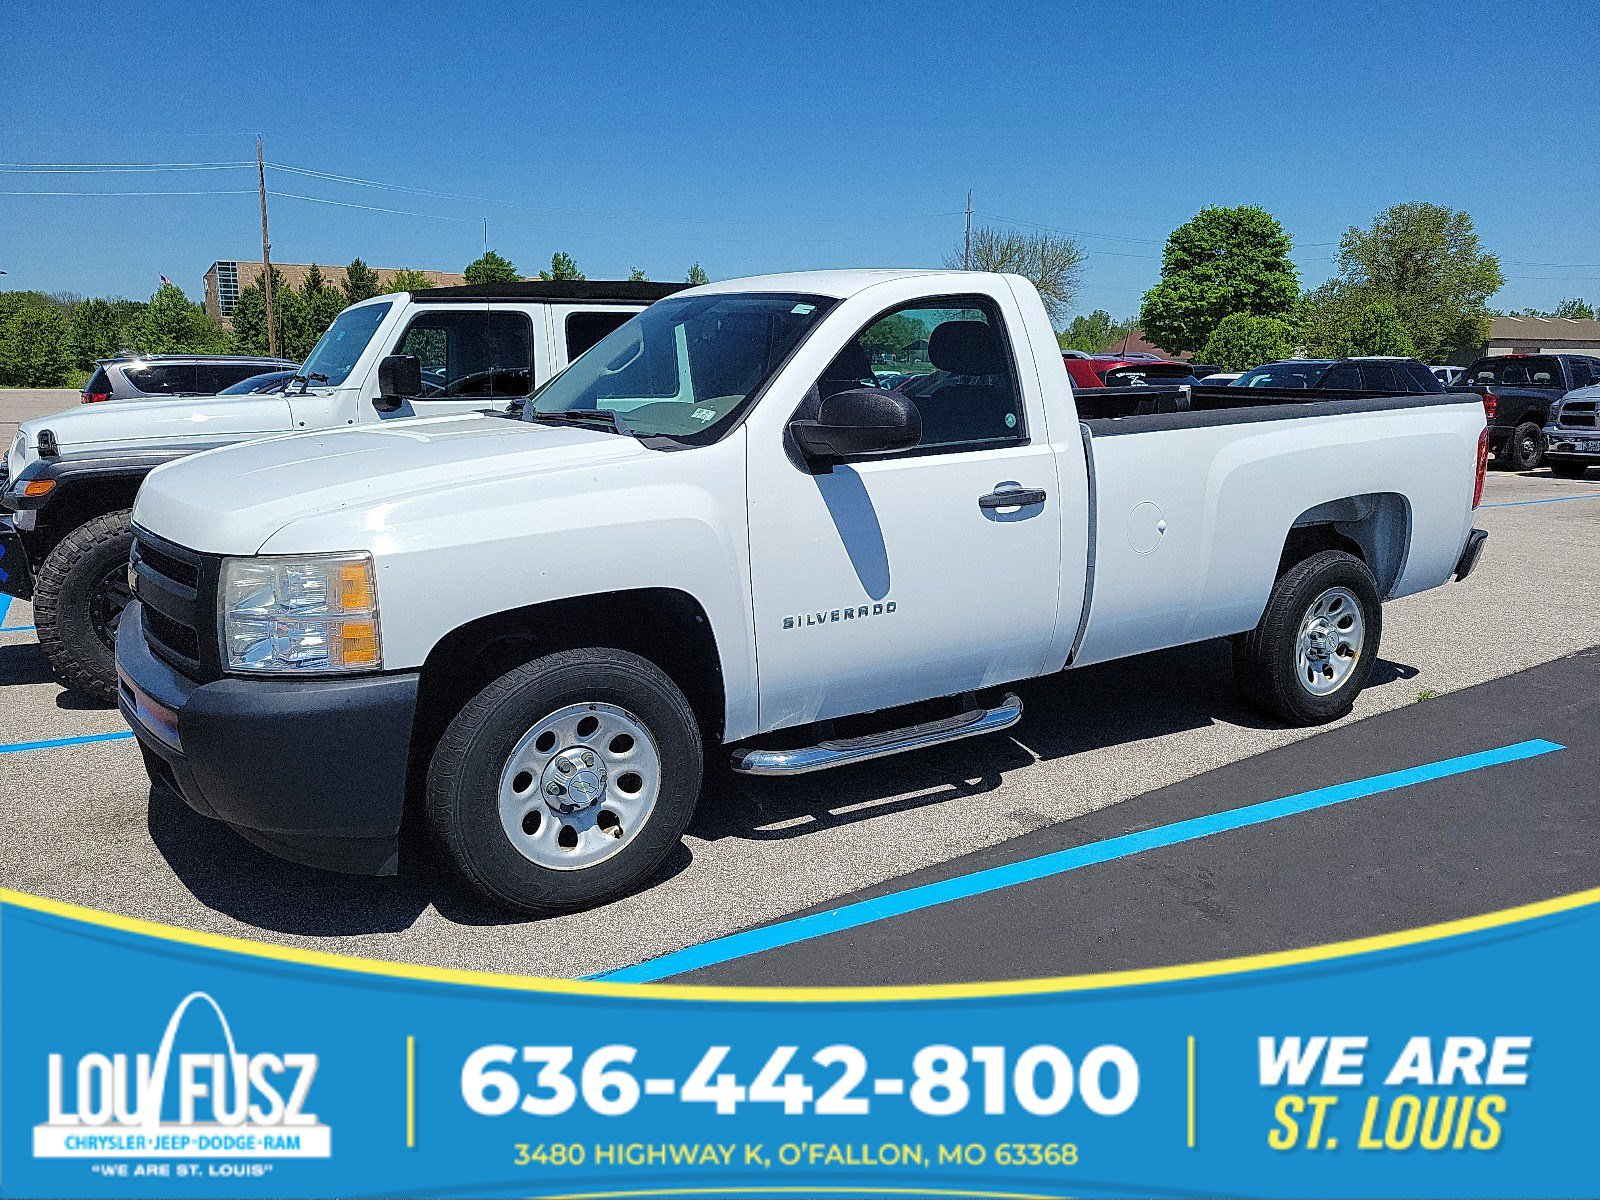 Pre-Owned 2010 Chevrolet Silverado 1500 Work Truck RWD Regular Cab Pickup